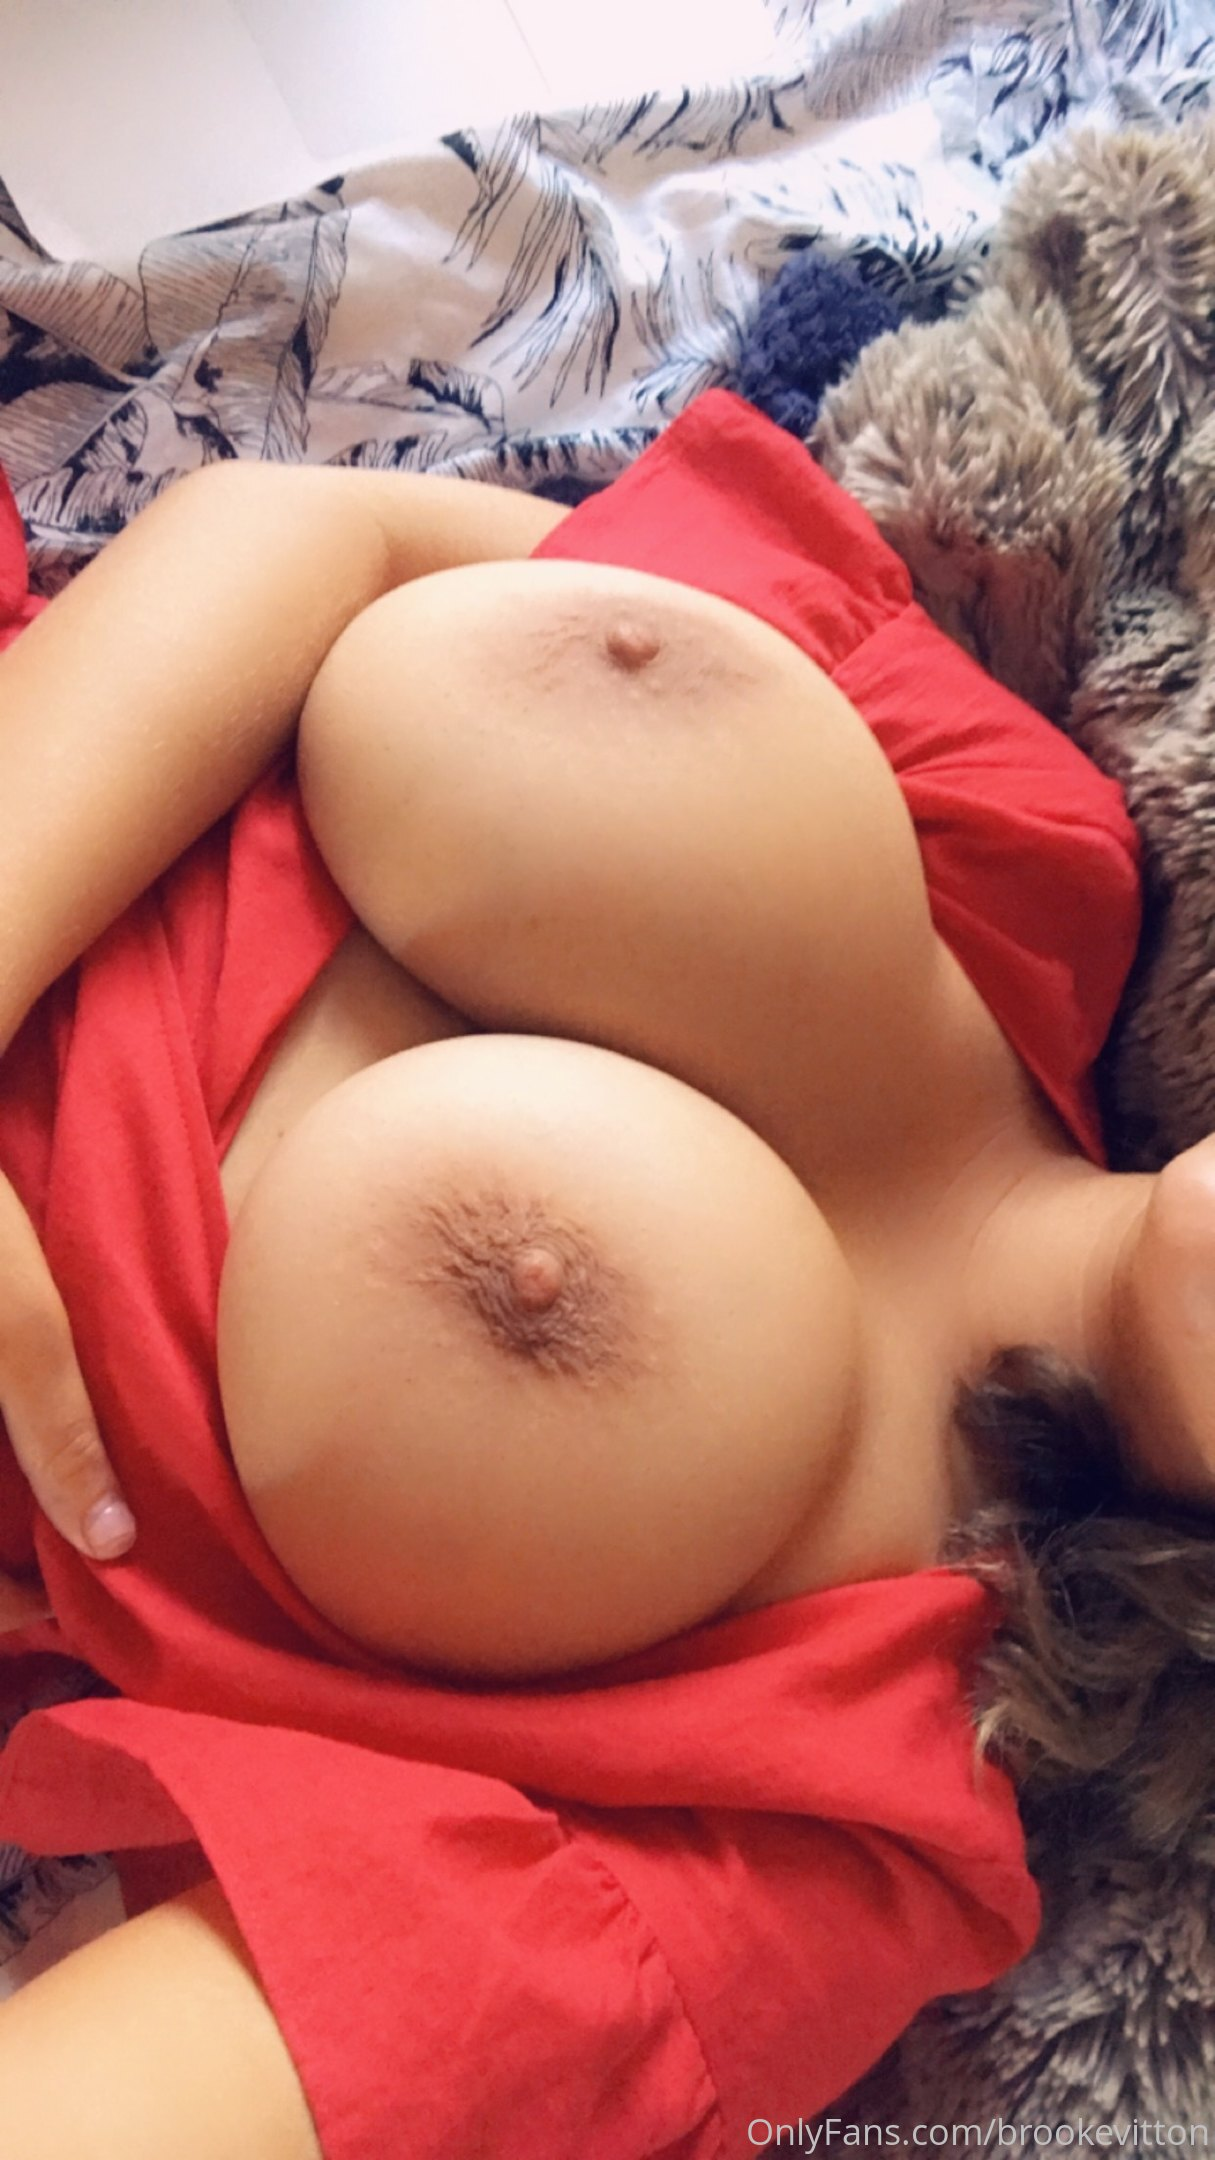 Avalon Hope, Avalonhopeofficial, Onlyfans 0026